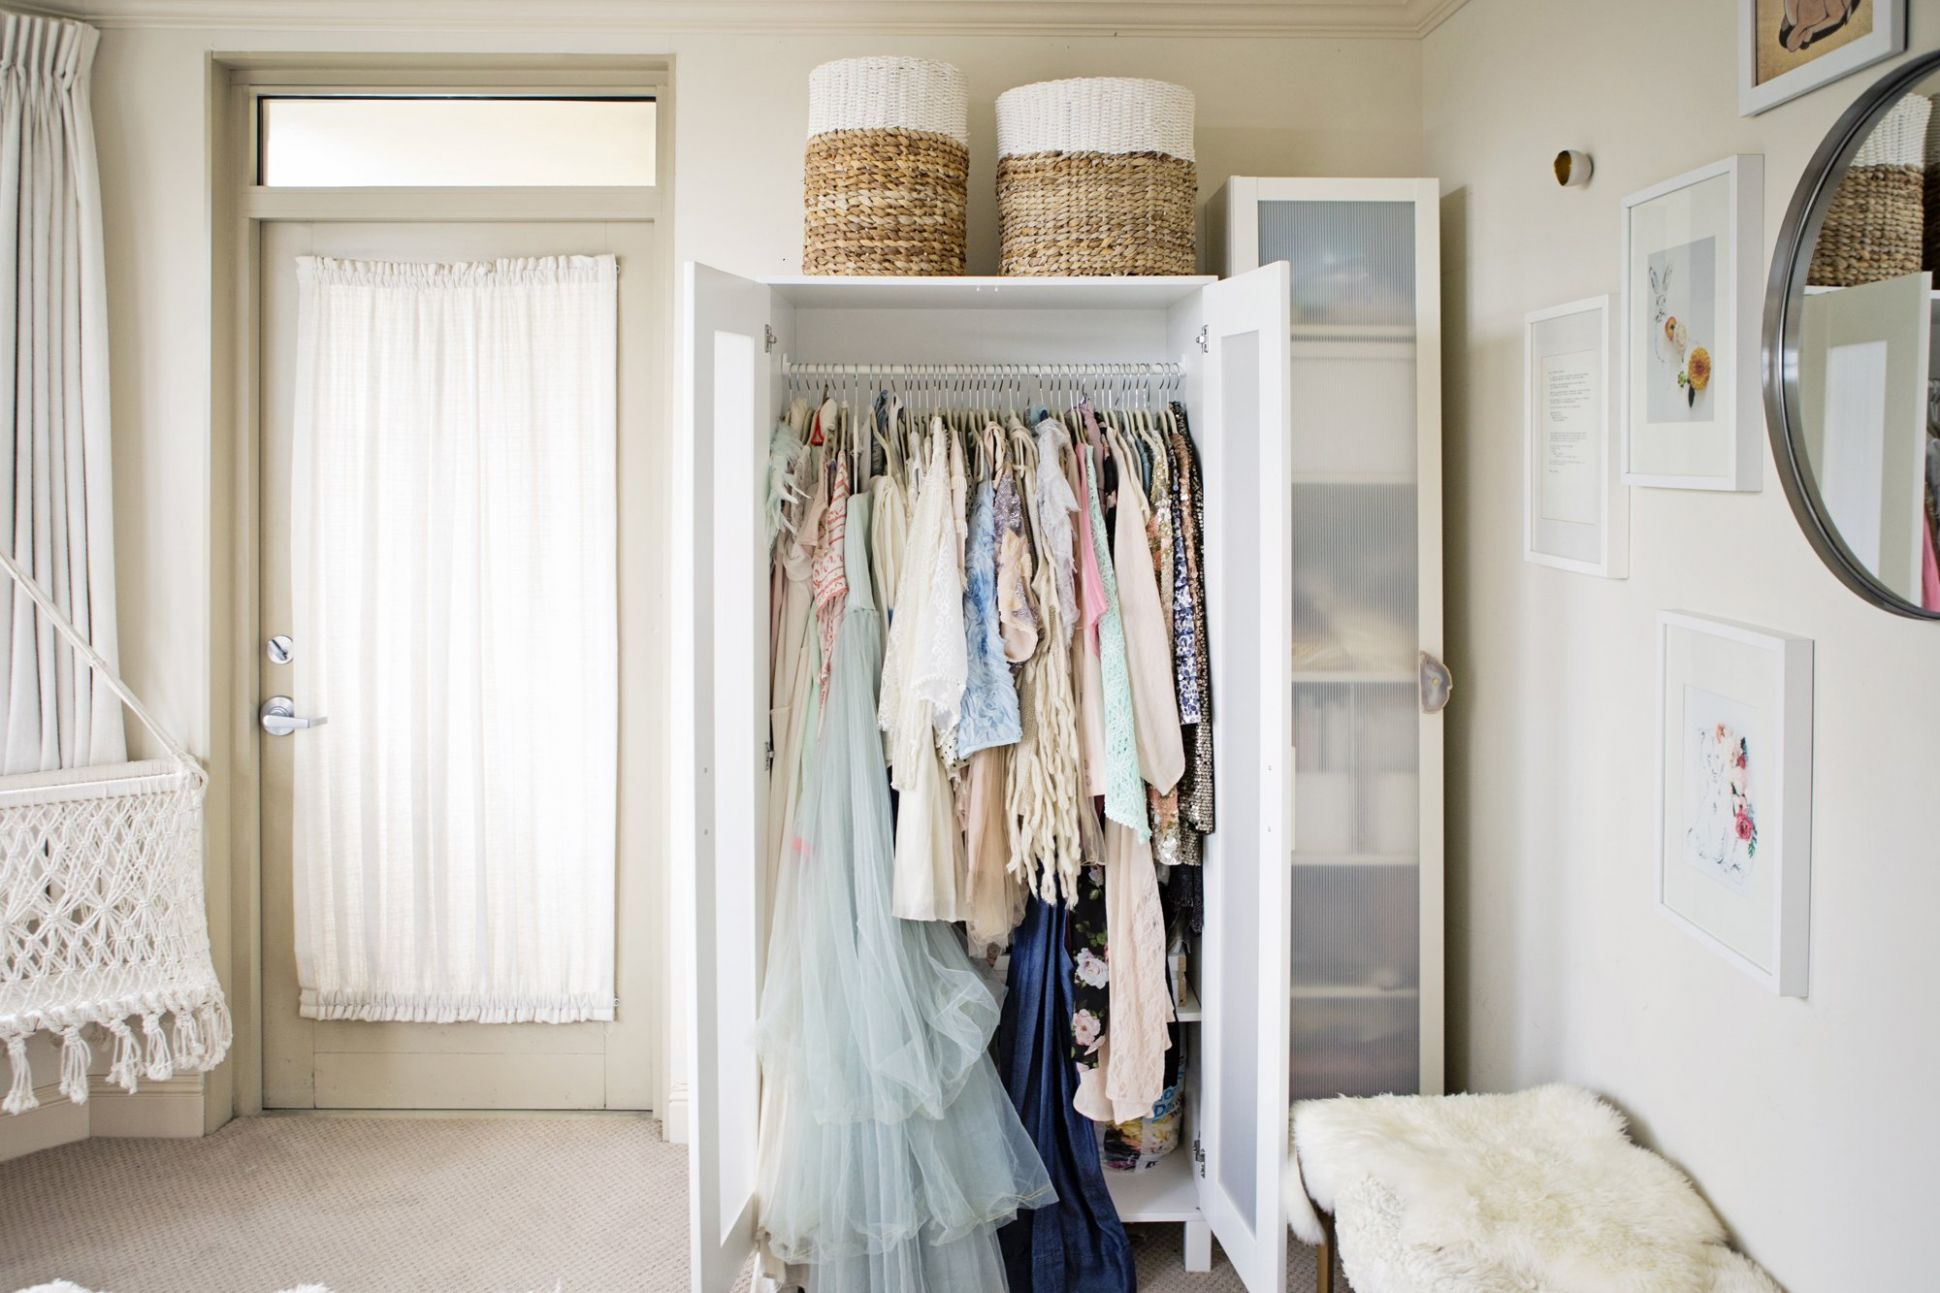 10 Ways to Organize a Bedroom With No Closets | Apartment Therapy - closet ideas for a room with no closet